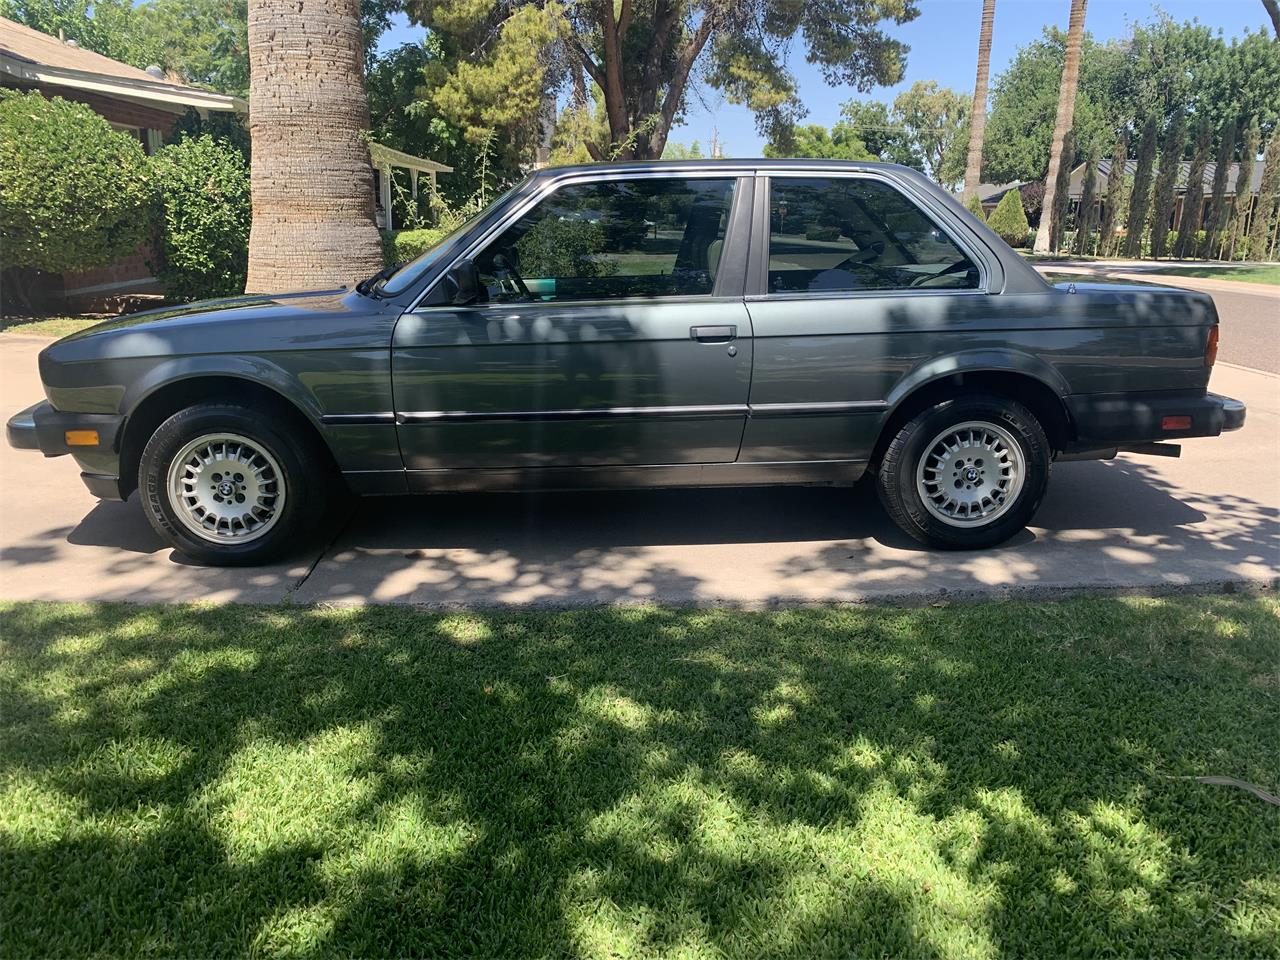 for sale 1984 bmw 3 series in phoenix, arizona cars - phoenix, az at geebo